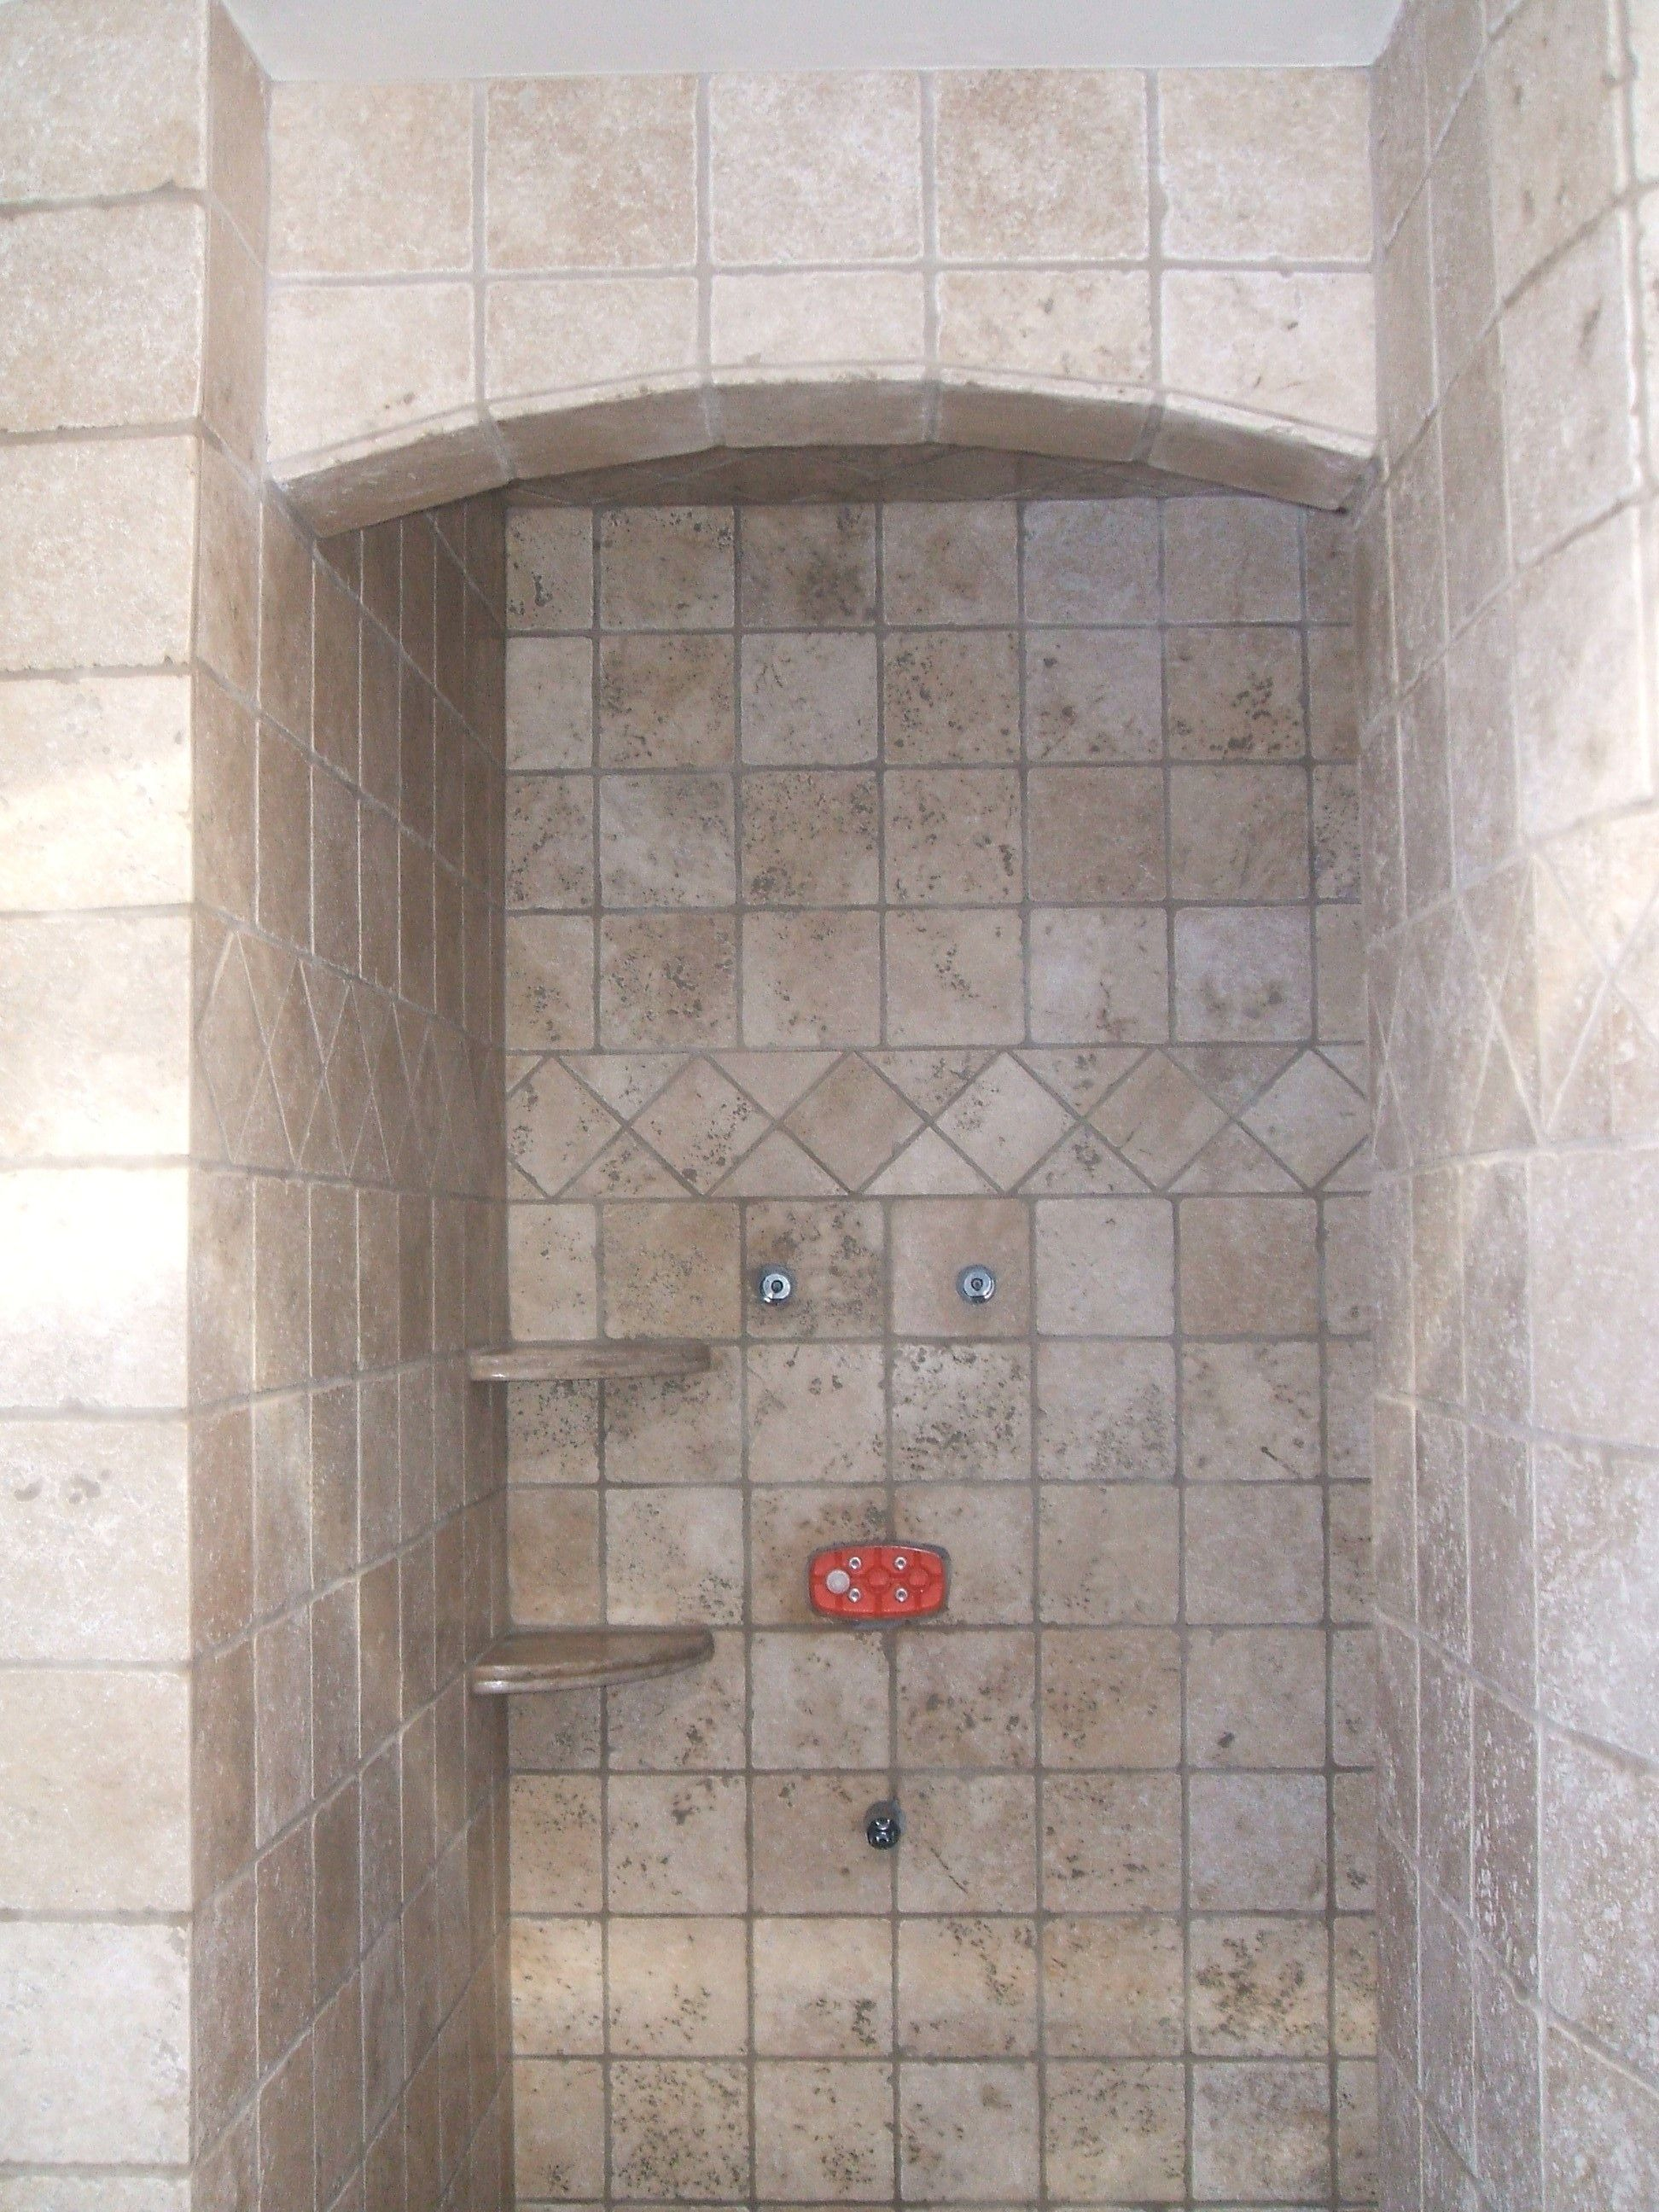 Terrific ceramic tile shower ideas small bathrooms with awesome stainless head shower and chrome Bathroom remodel ideas with stand up shower